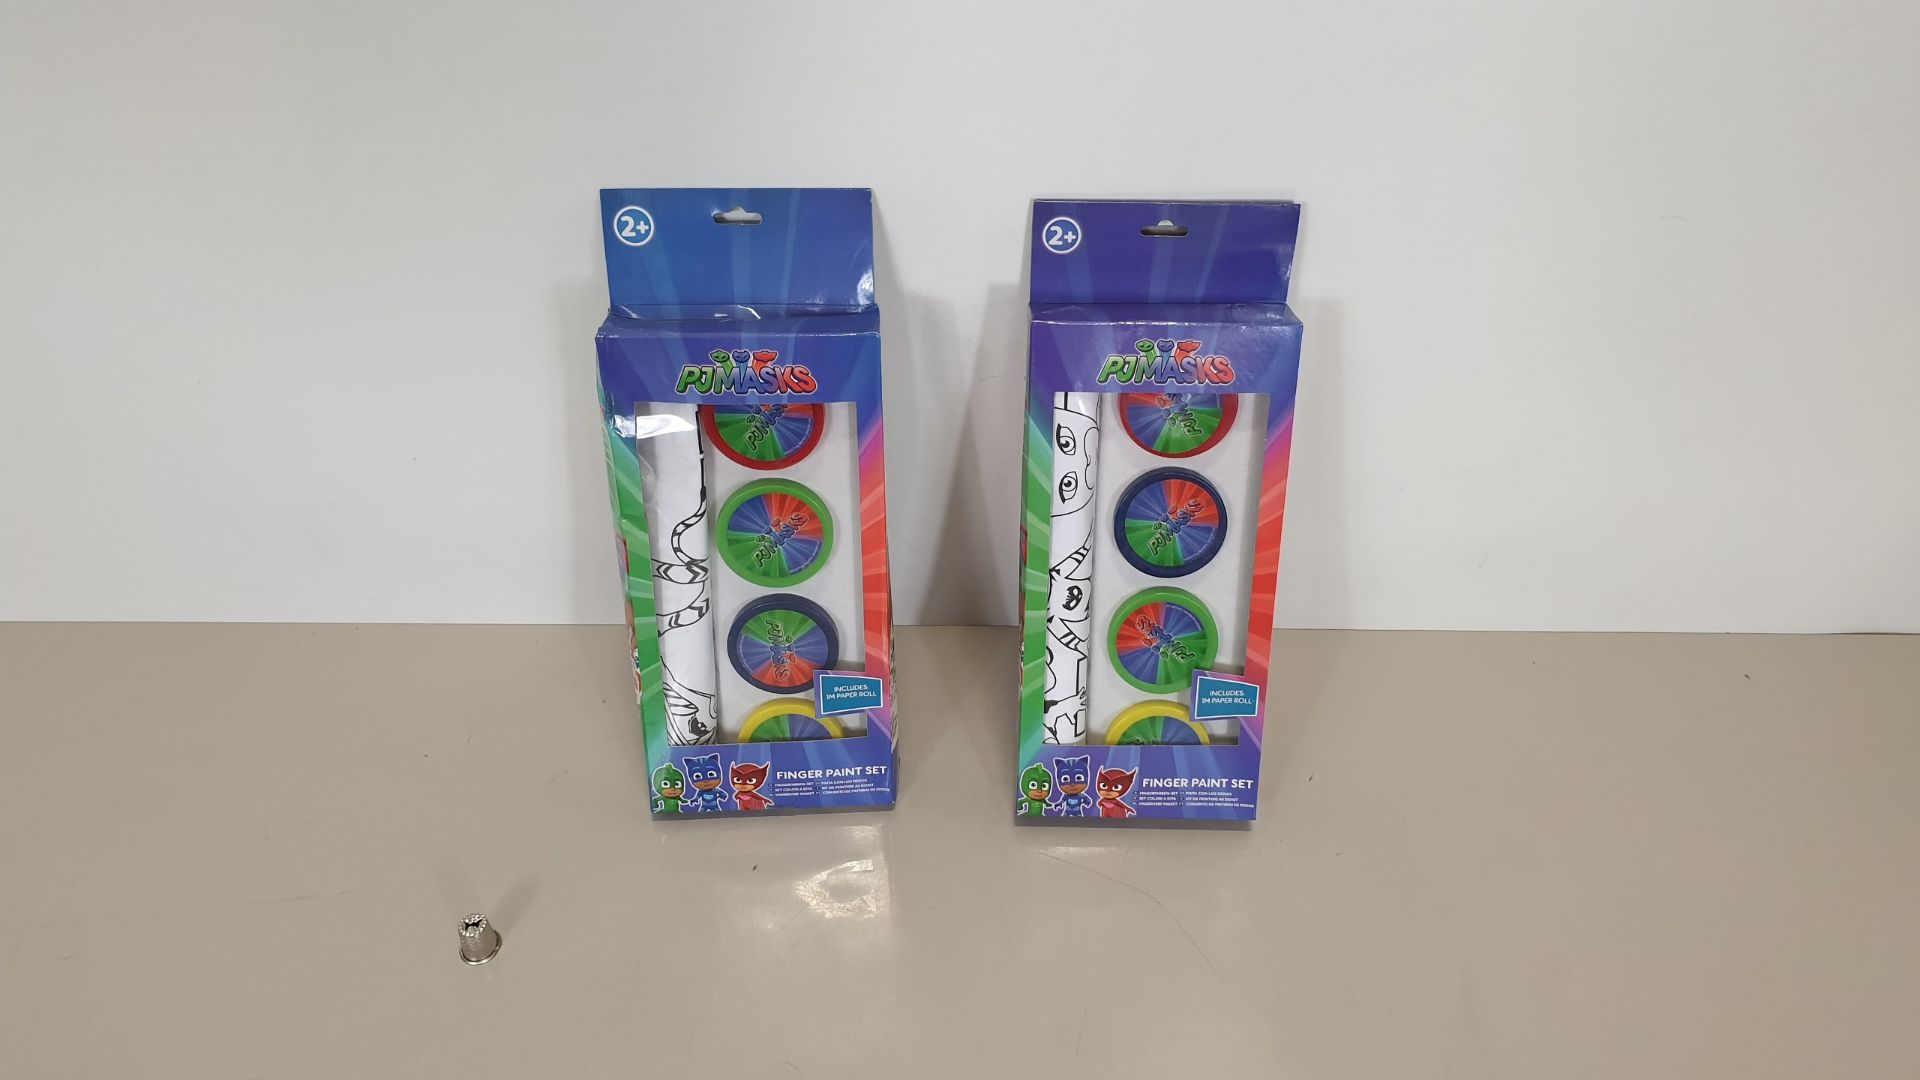 Lot 61 - 156 X BRAND NEW PJ MASKS 4 FINGER PAINT SET, INCLUDES 1M PAPER ROLL - IN 13 CARTONS